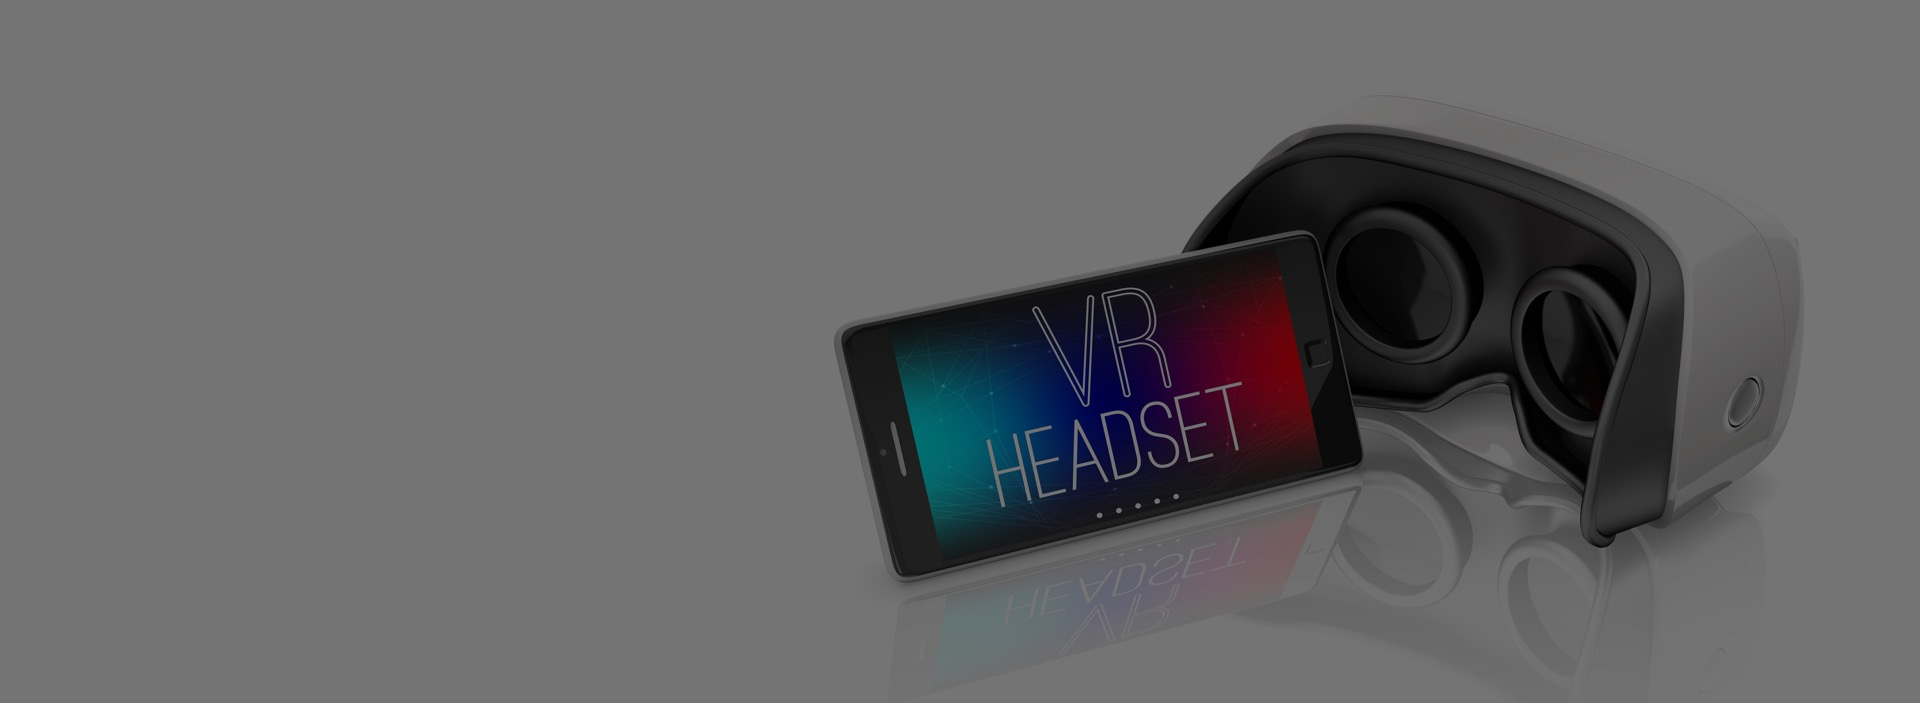 Top 6 solutions created by Ukrainian VR developers